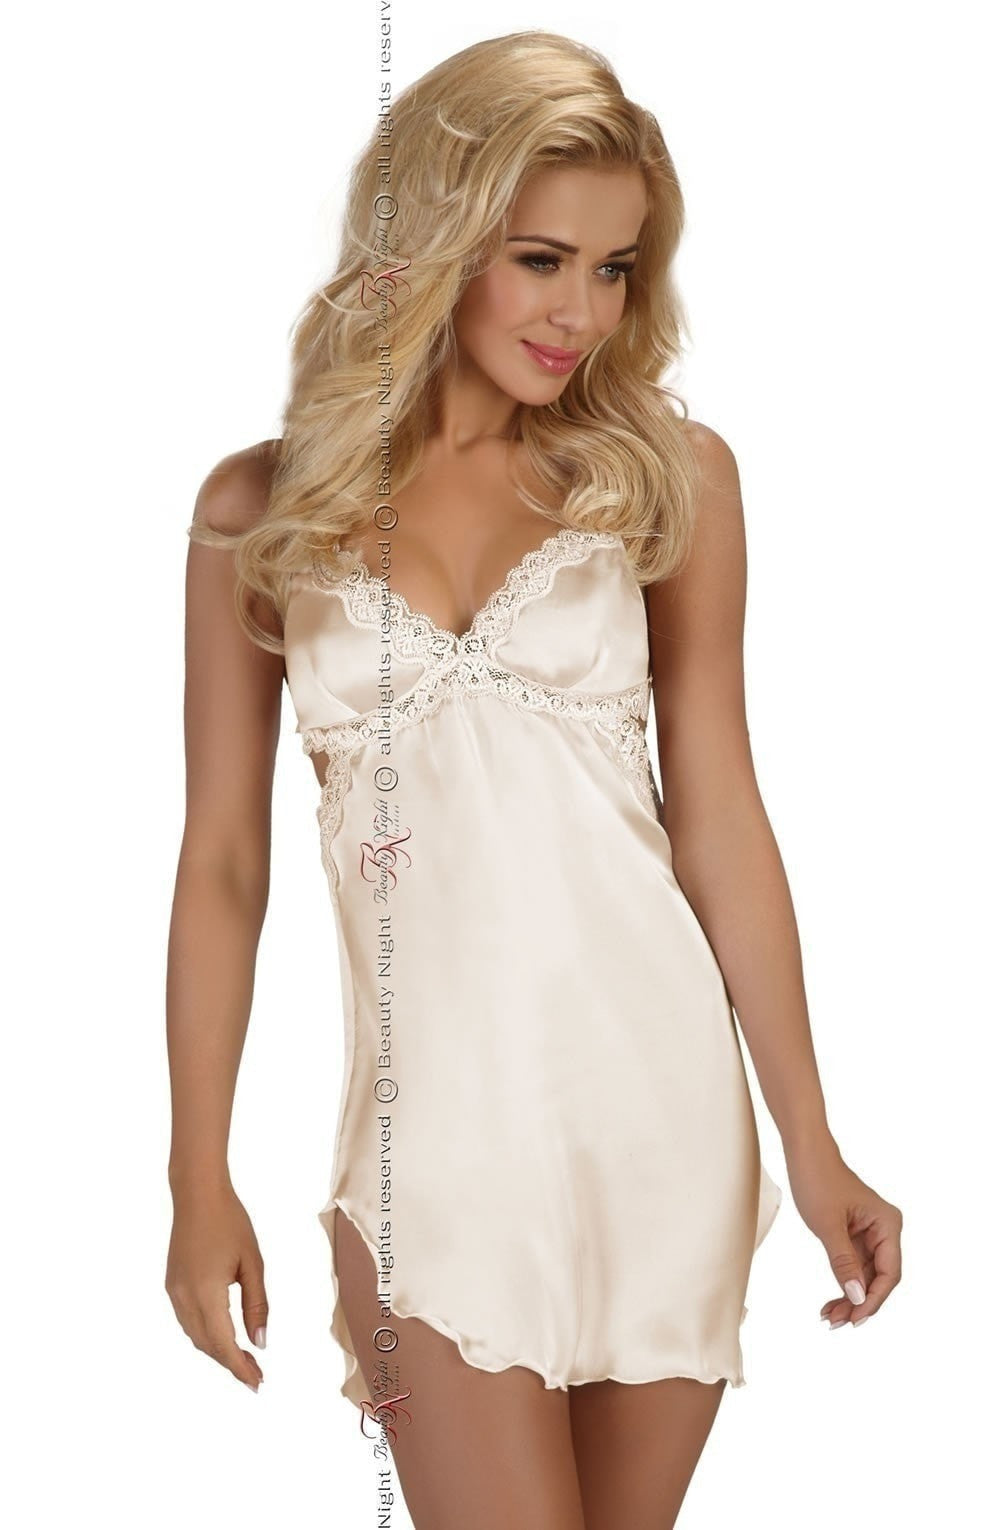 Beauty Night Shannon Chemise Set (Vanilla White) - Chemises - Beauty Night - Charm and Lace Boutique